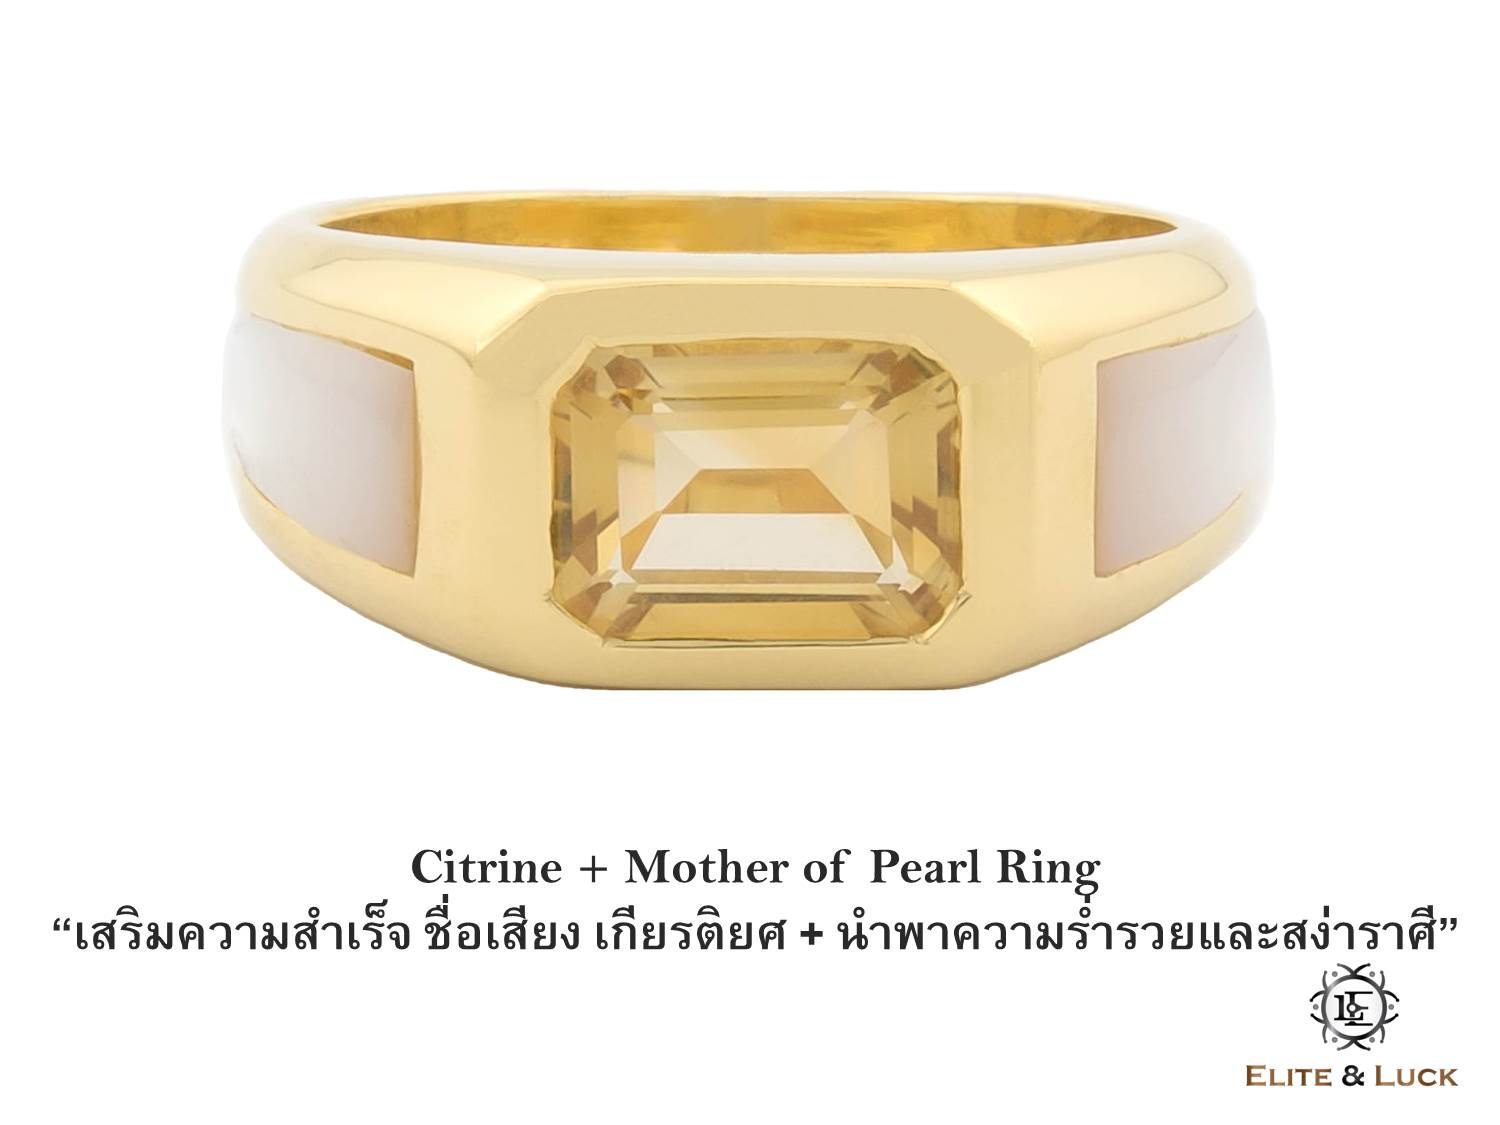 แหวน Citrine + Mother of Pearl Sterling Silver สี 18K Yellow Gold รุ่น Majestic